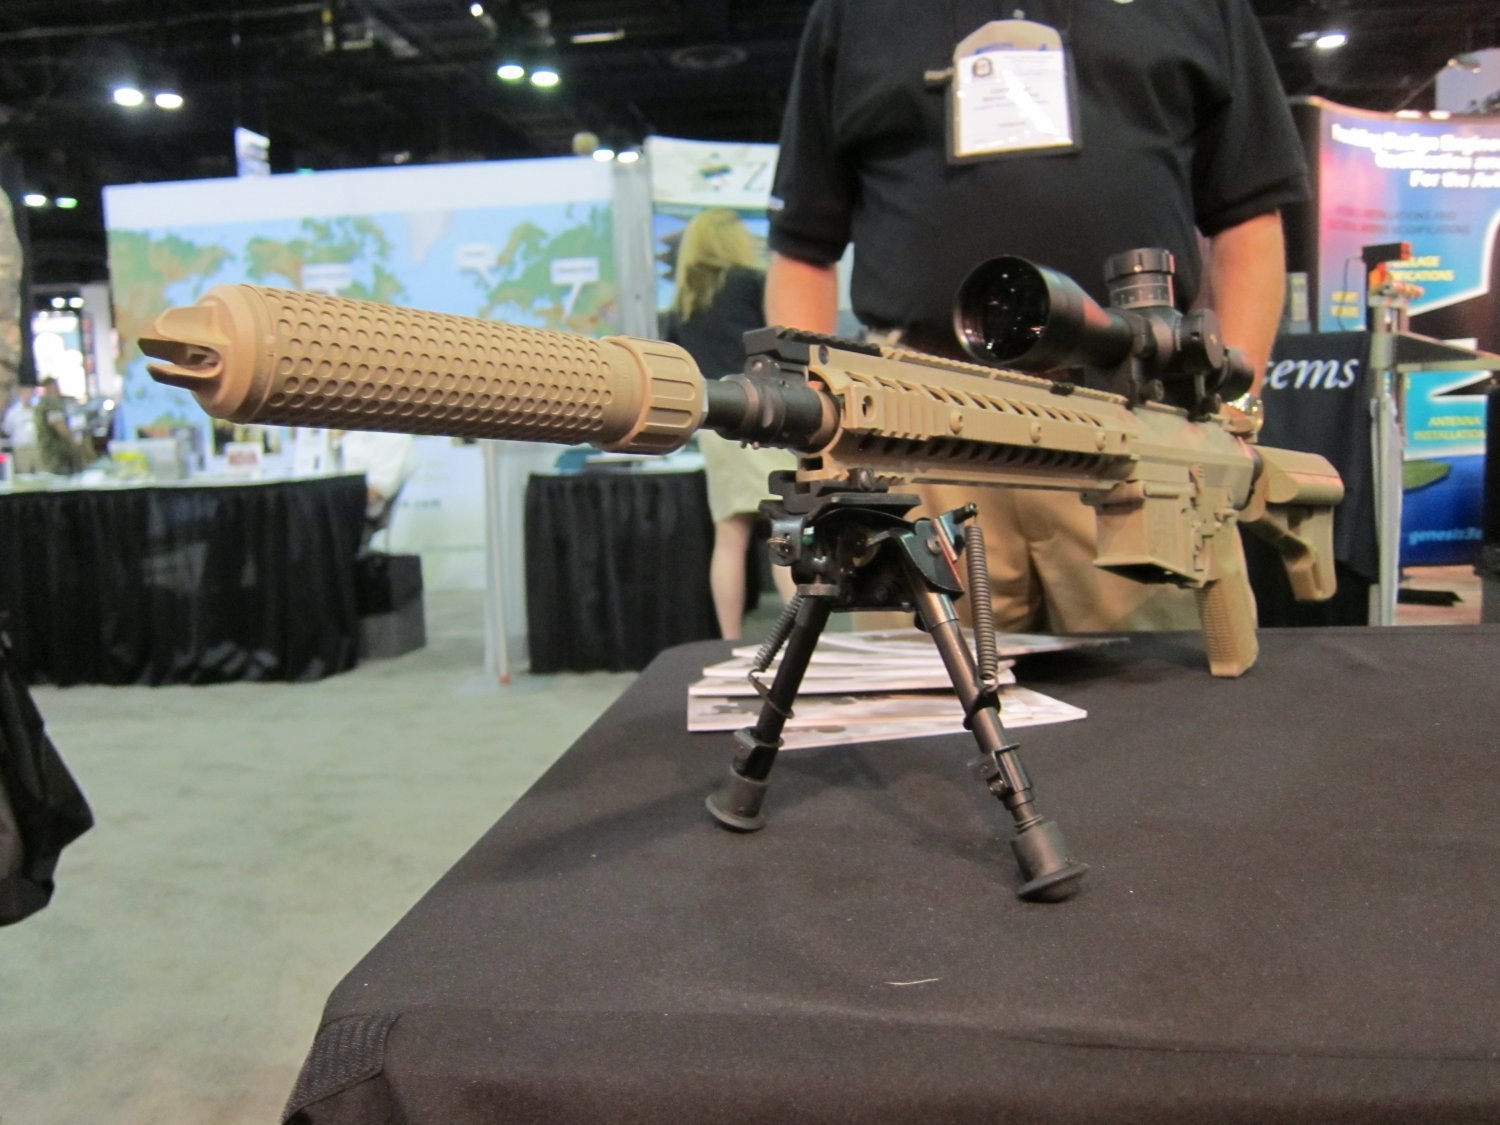 Knight's Armament Co. KAC M110 SASS/SR-25 EM Carbine/Compact 16″ 7.62mm NATO Battle Carbine with KAC 762 MAMS Muzzle Brake and KAC QDC and CQB Muzzle Cans (Silencers/Sound Suppressors): Range Session (Photos and Video!)